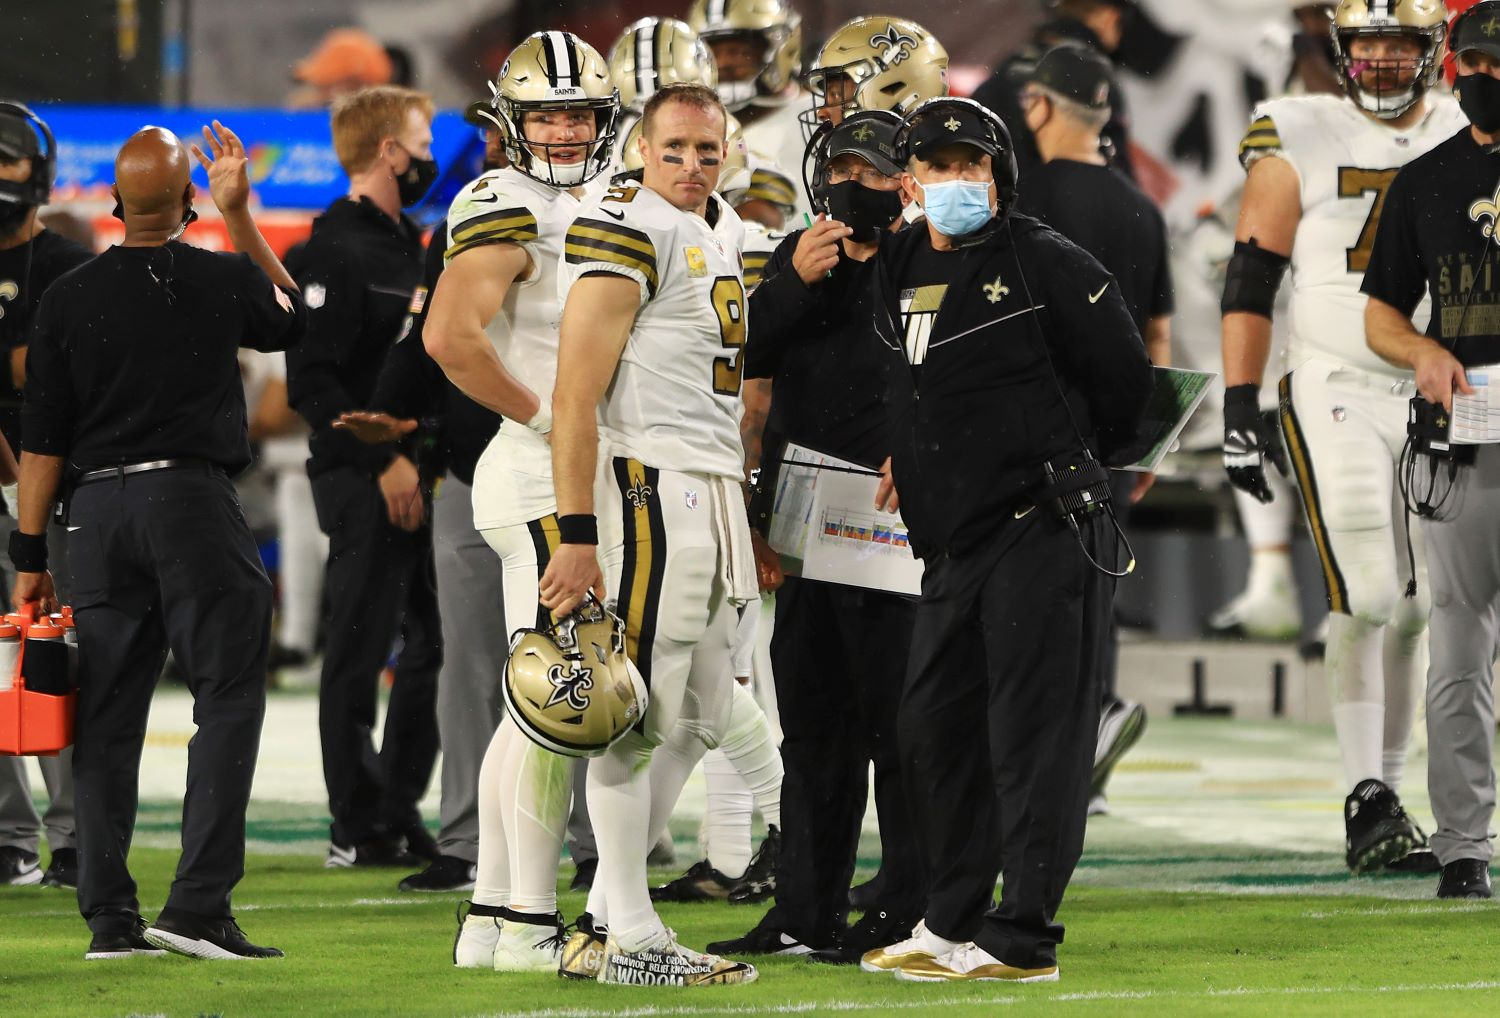 Sean Payton recently revealed how the New Orleans Saints plan to replace Drew Brees. Will their unorthodox approach to the QB spot pay off?